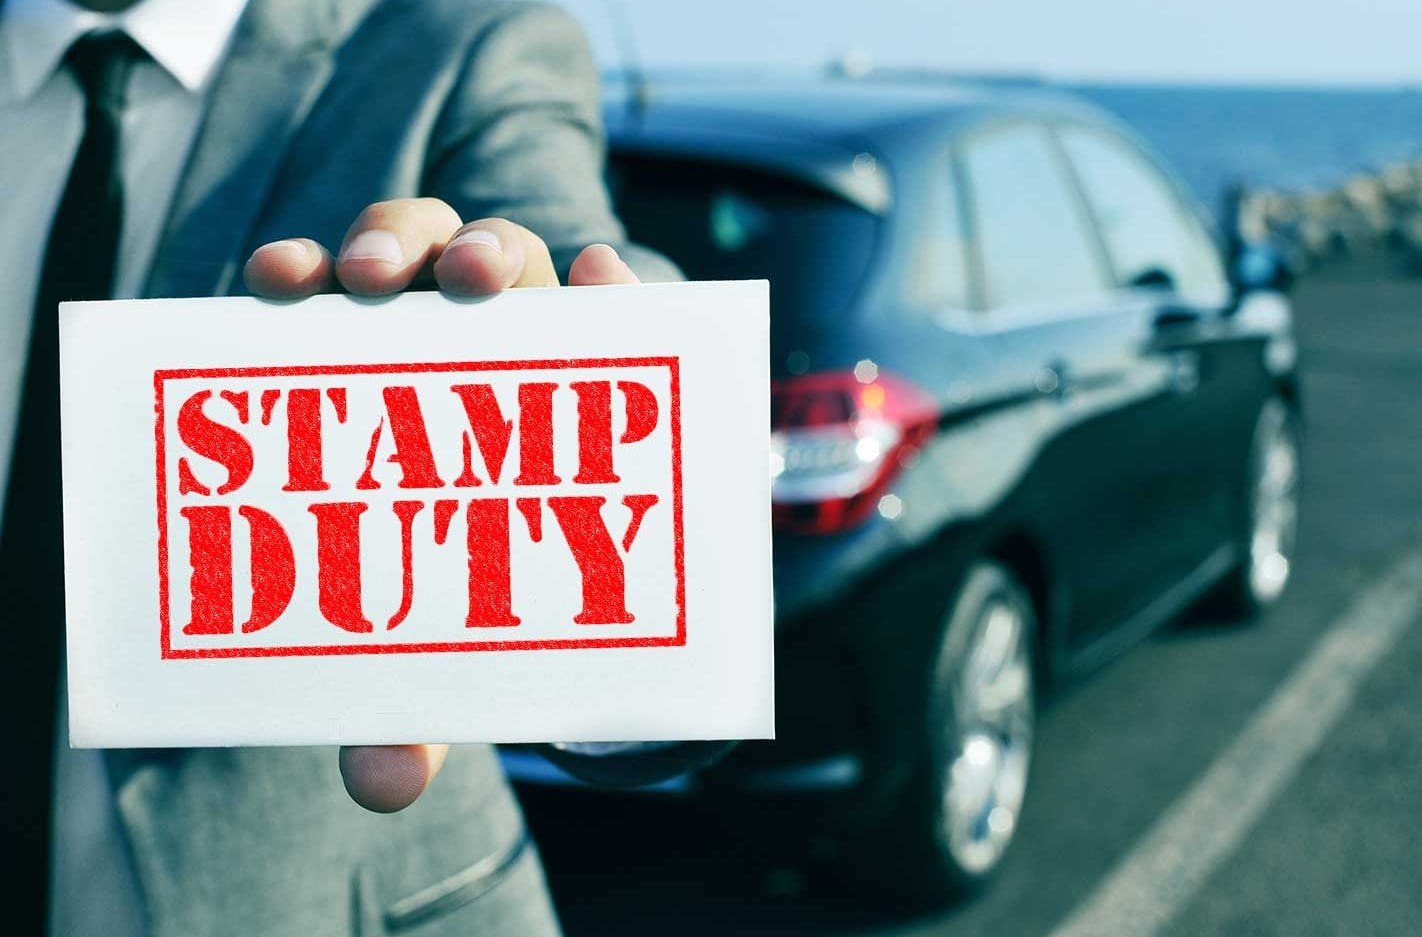 Stamp Duty WC Primary Image Jpg